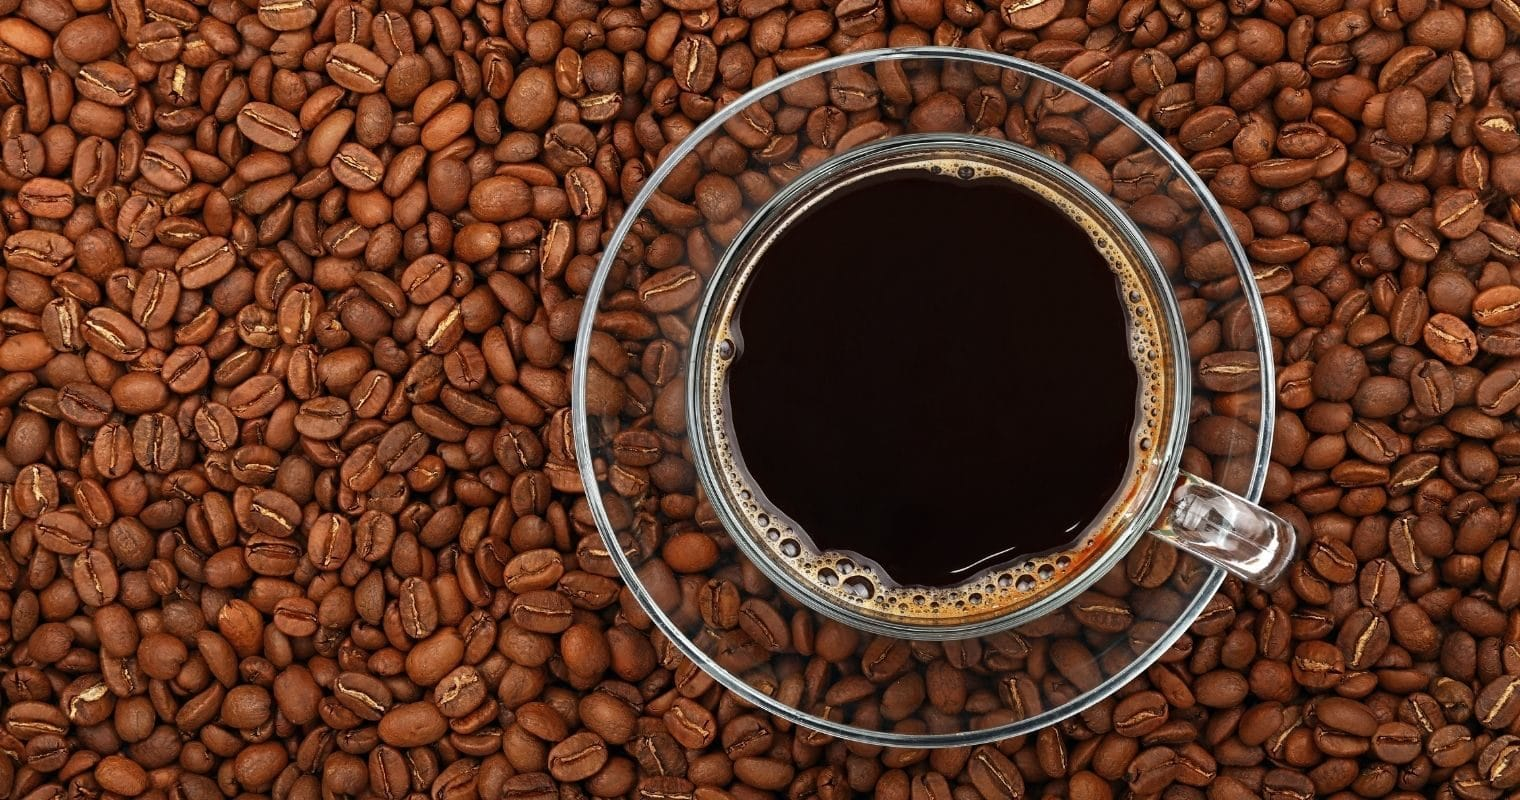 Drinking Black Coffee Daily